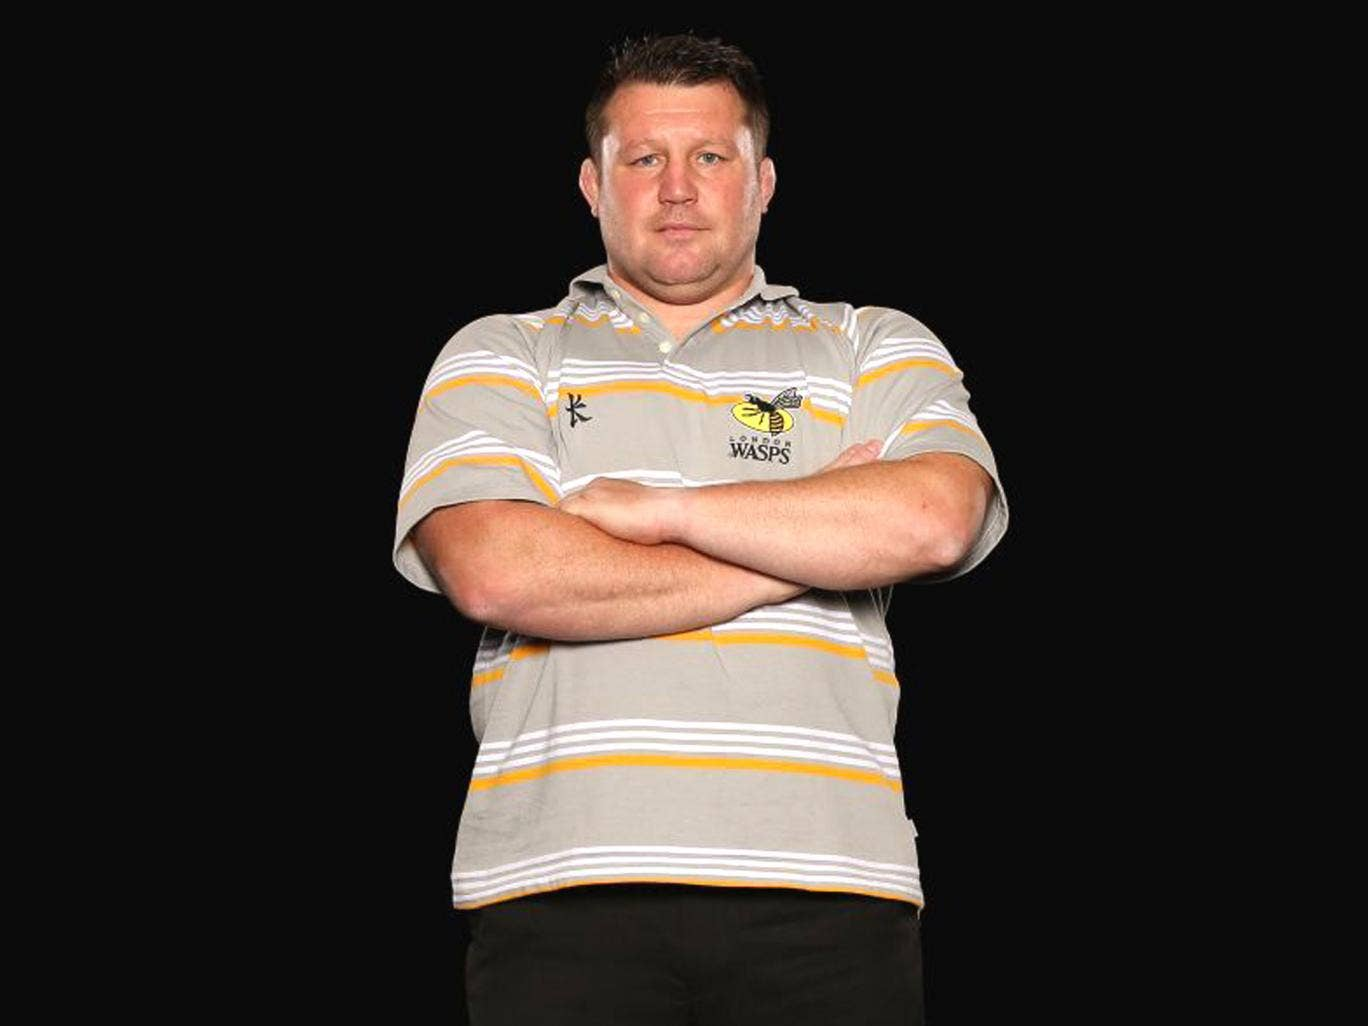 David Young has found himself at the epicentre of so many seismic sporting tremors and aftershocks since joining Wasps as rugby director